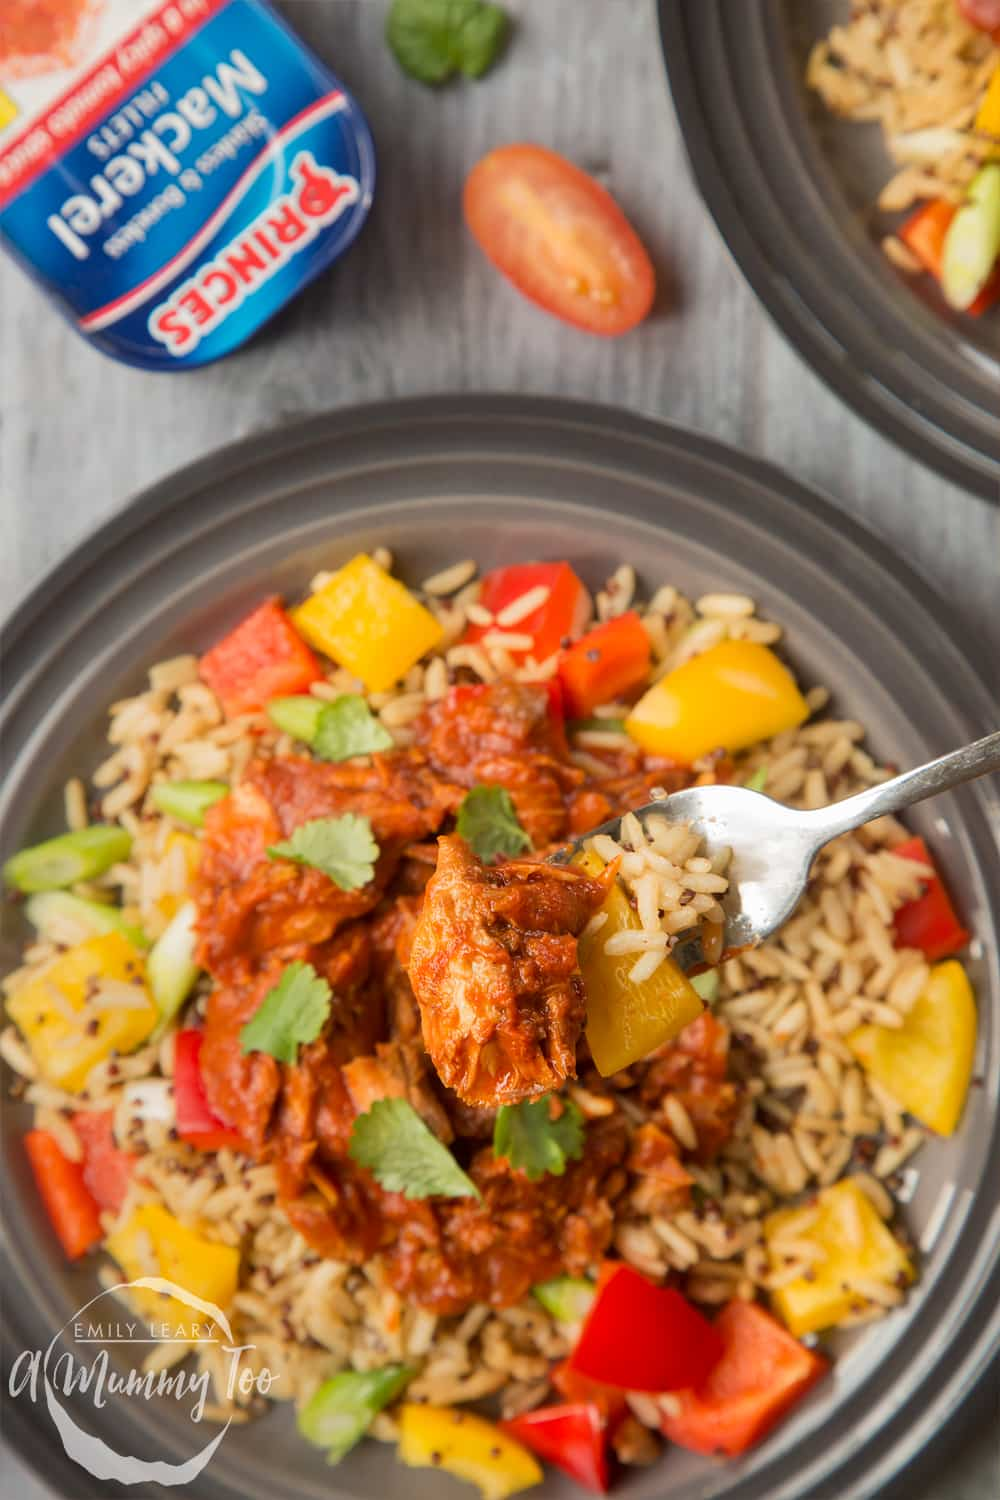 Spicy tomato mackerel with rice, made with Princes mackerel fillets in a spicy tomato sauce